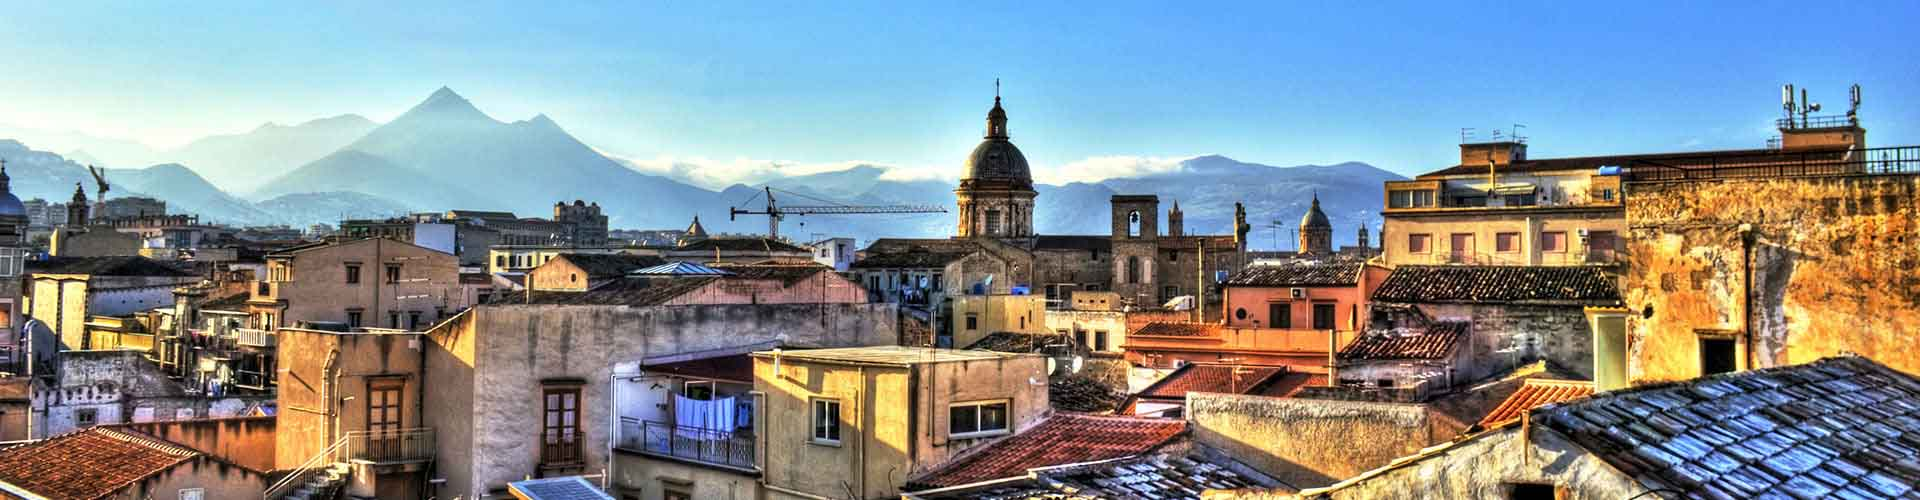 Palermo – Hostels in Palermo. Maps for Palermo, Photos and Reviews for each hostel in Palermo.